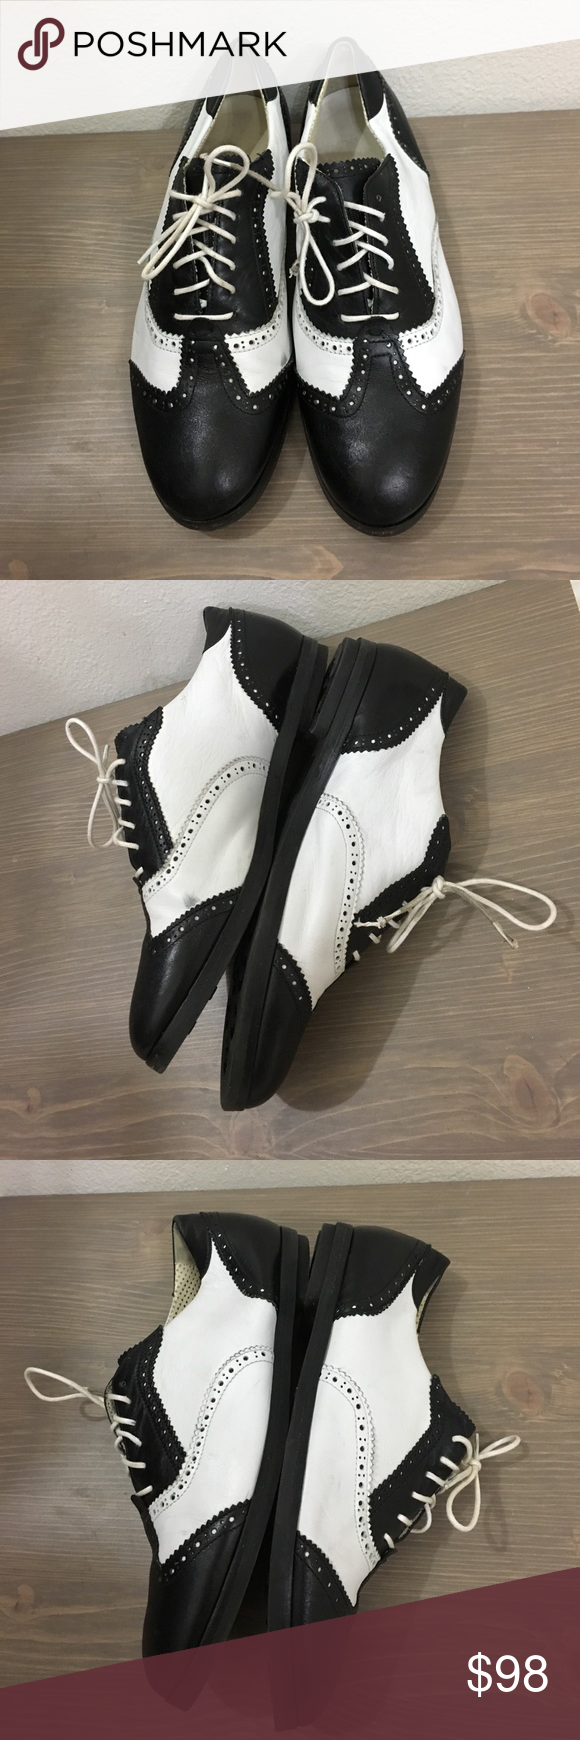 Brooks Brothers golf shoes size 6.5